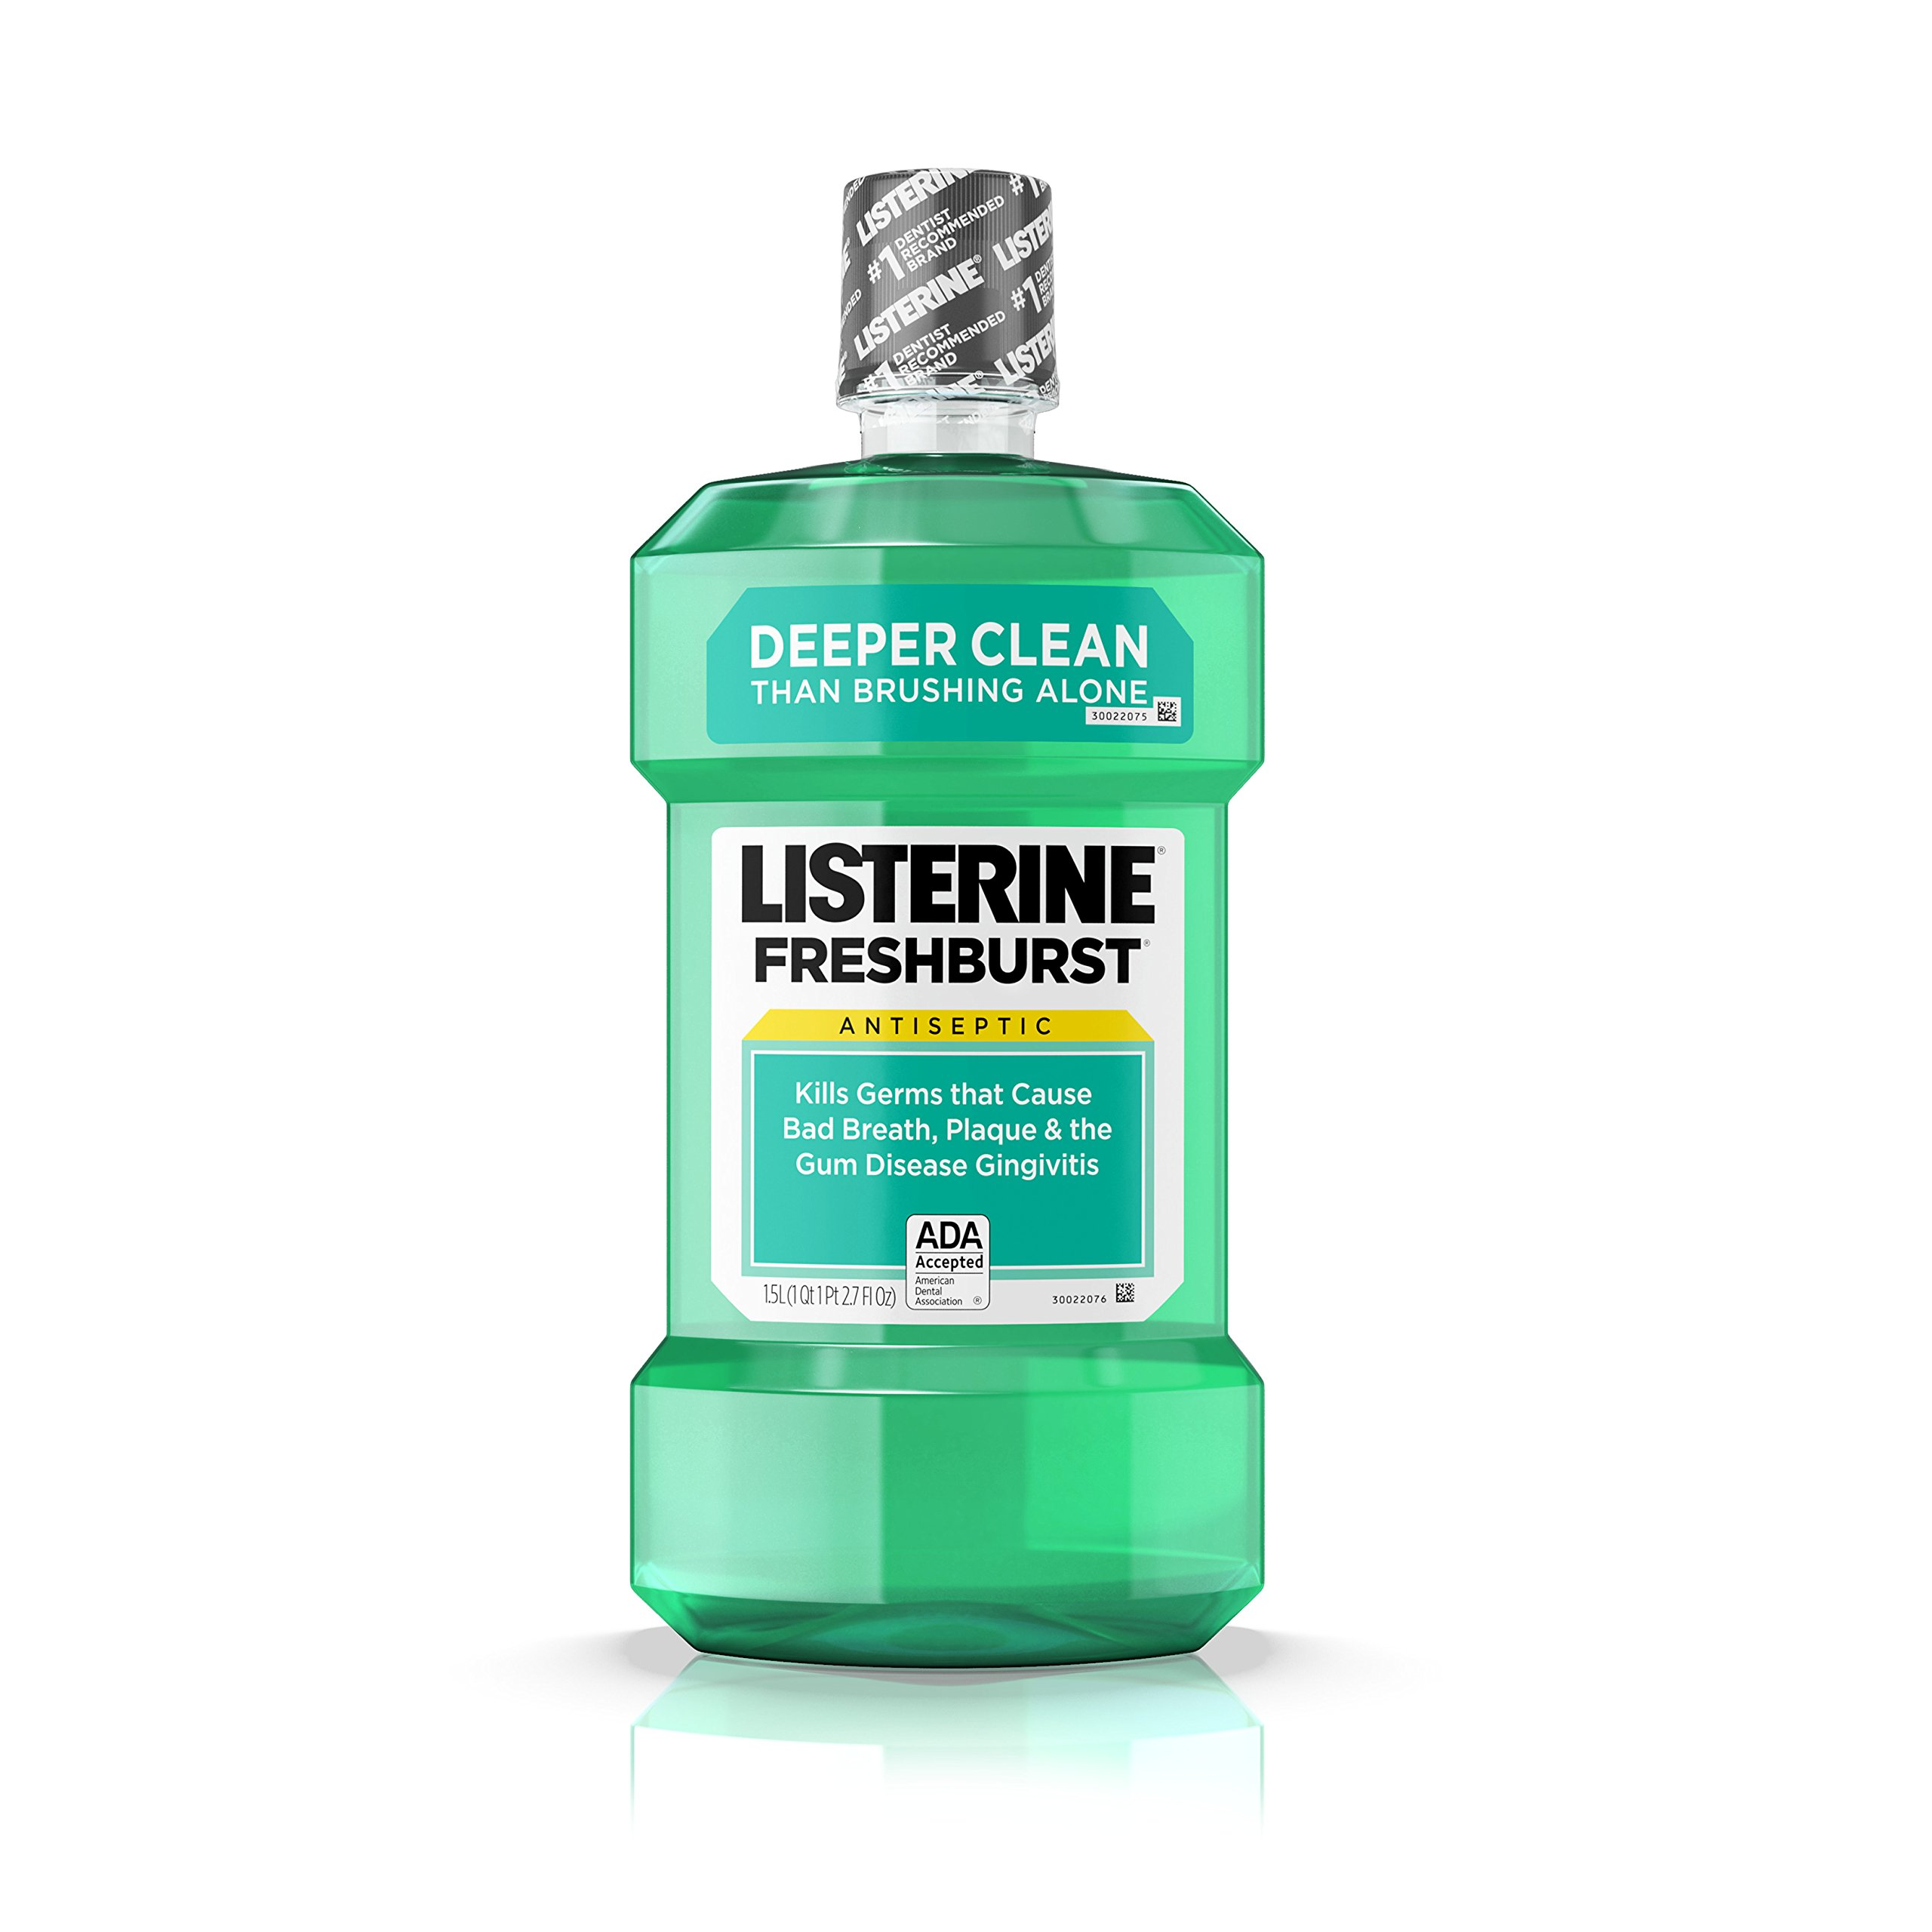 Listerine Freshburst Antiseptic Mouthwash For Bad Breath, 1.5 L, (Pack of 6)